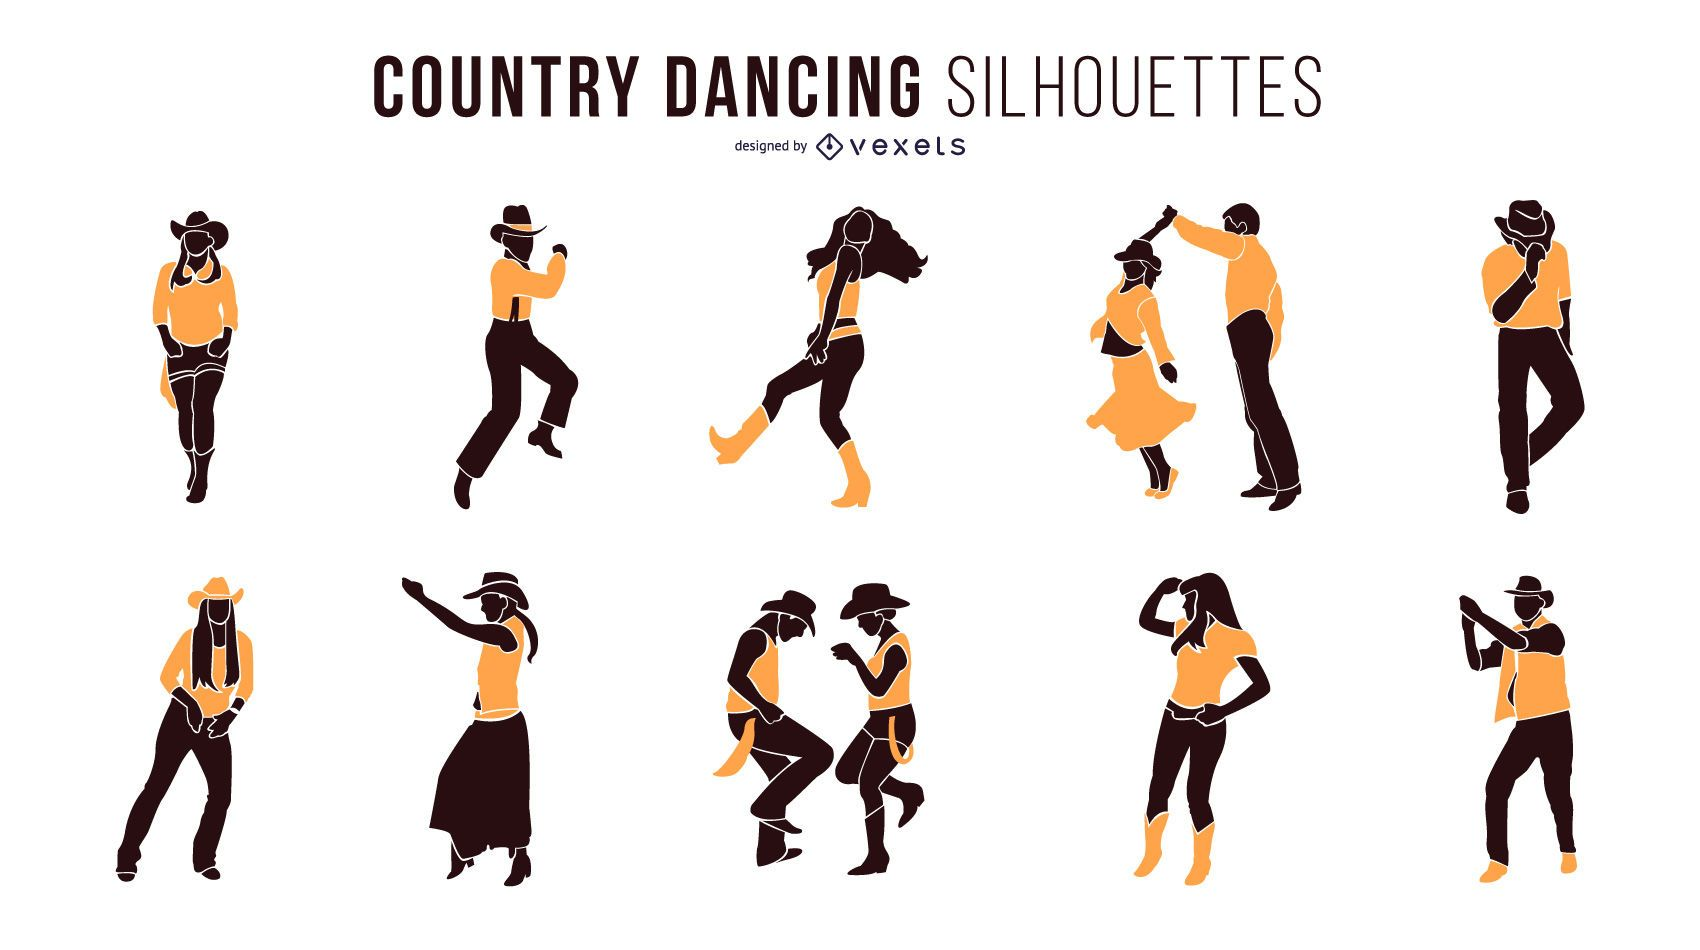 Country Dancing Silhouettes